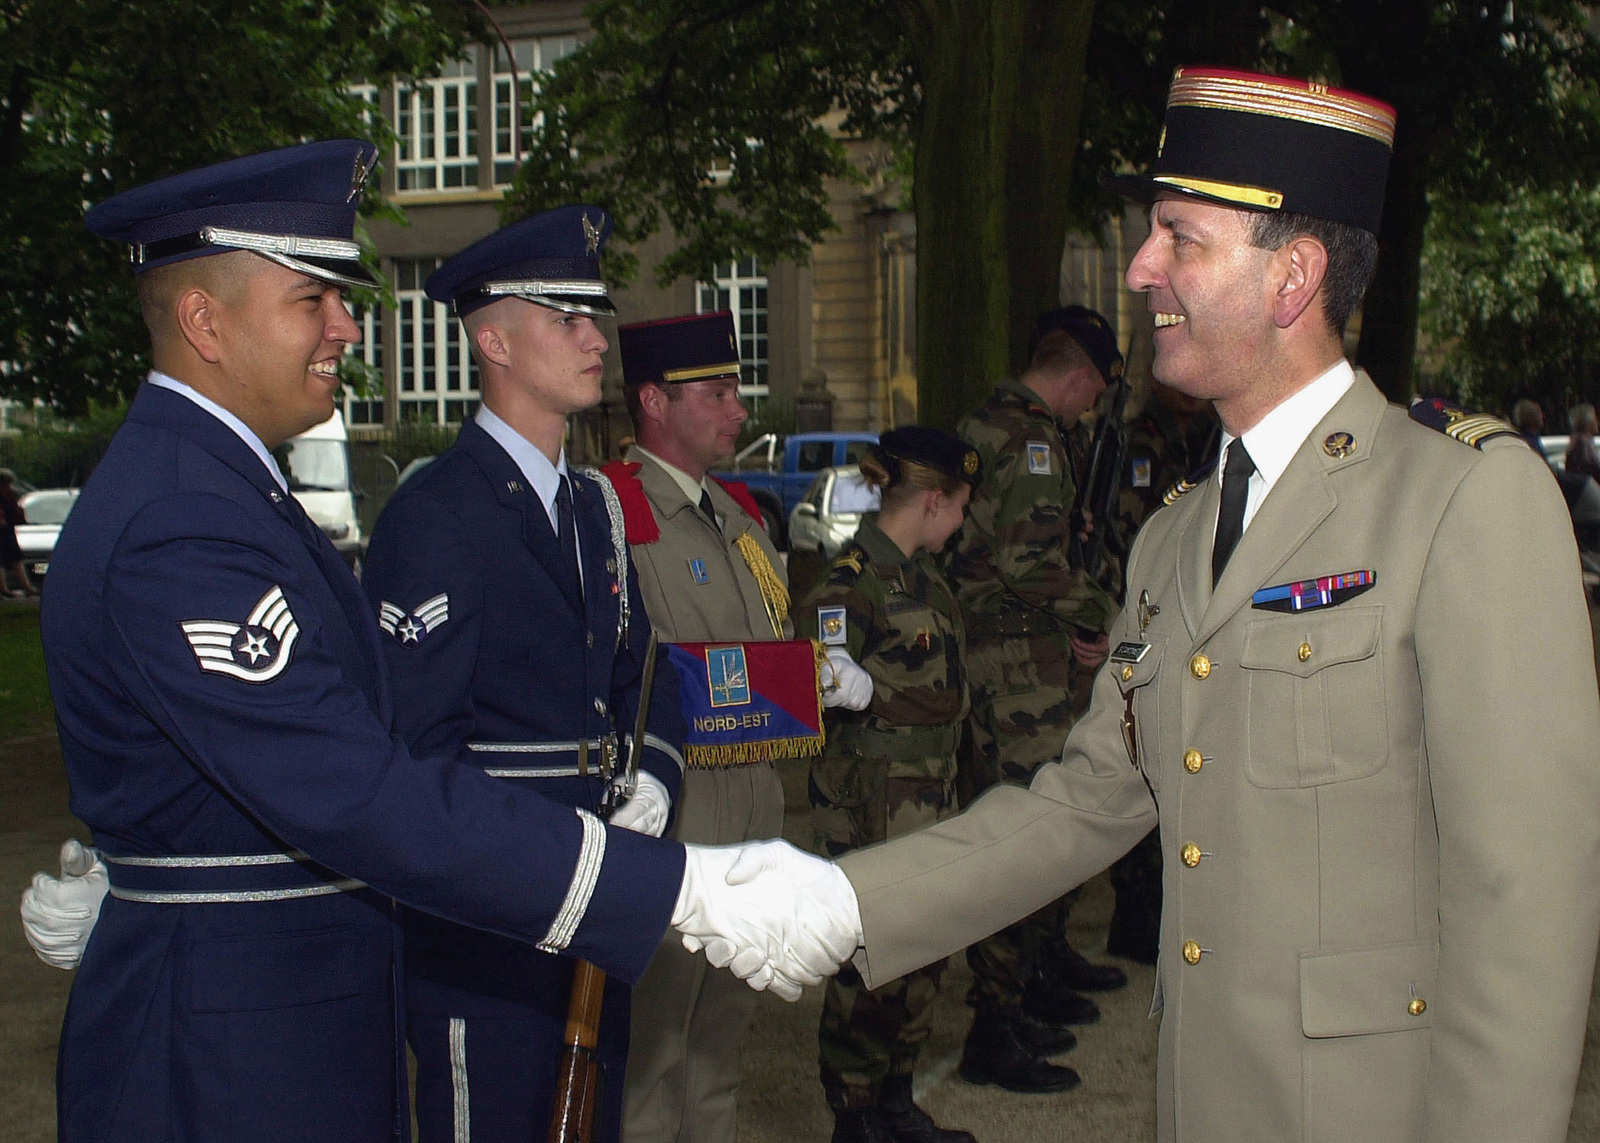 An unidentified French Army Officer (right) shakes hand with US Air Force (USAF) Airmen assigned to the Base Honor Guard Team at Ramstein Air Base (AB), Germany, in appreciation for their participation during a French Veterans Organization Ceremony held at Metz-Sablon, France